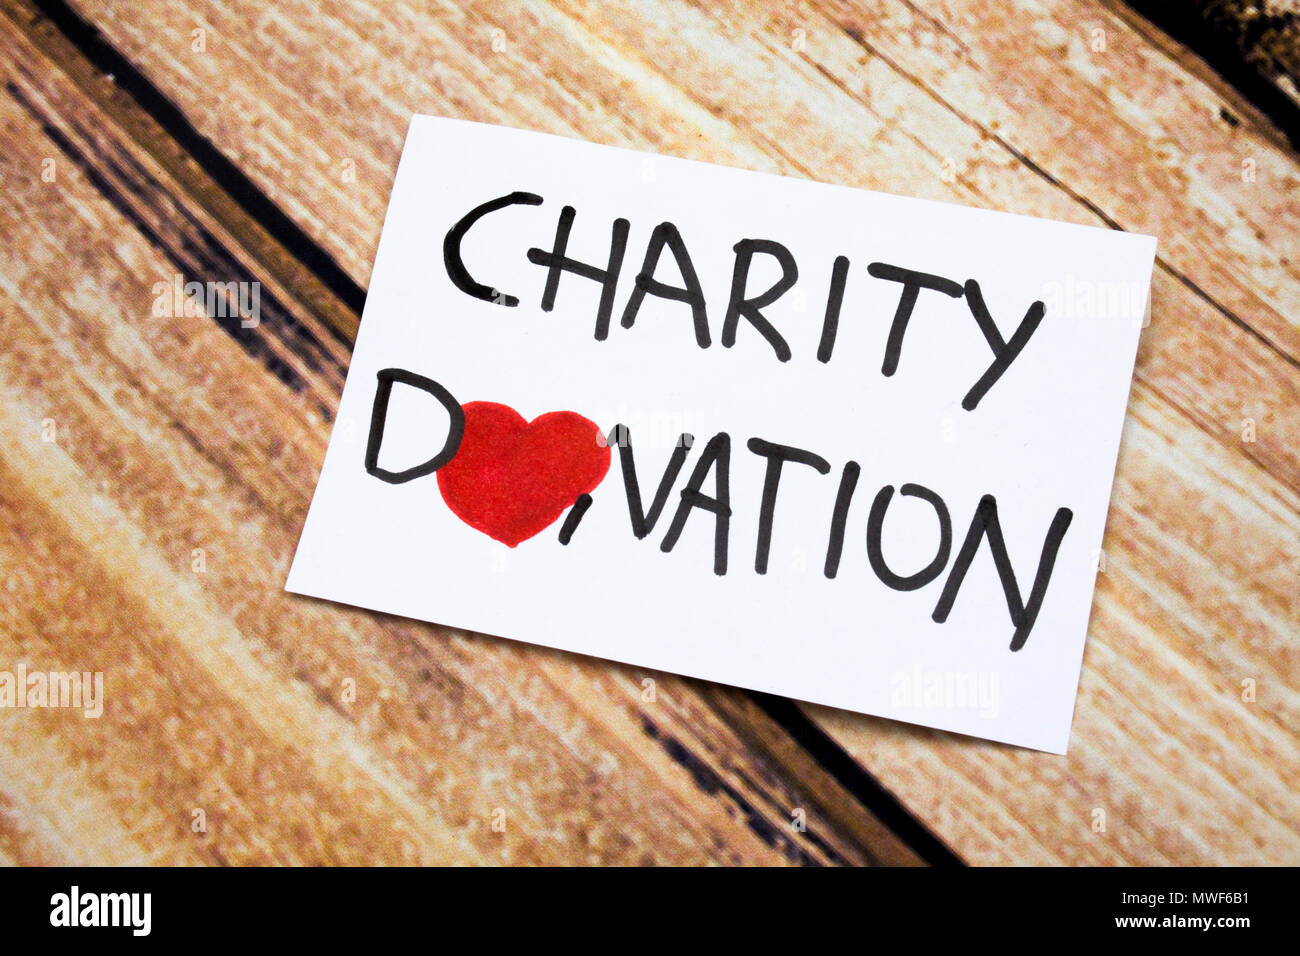 Conceptual image with Charity Donations handwritten message on the white paper with wooden background. Health and god will concept with red heart. Help for people having no money. - Stock Image